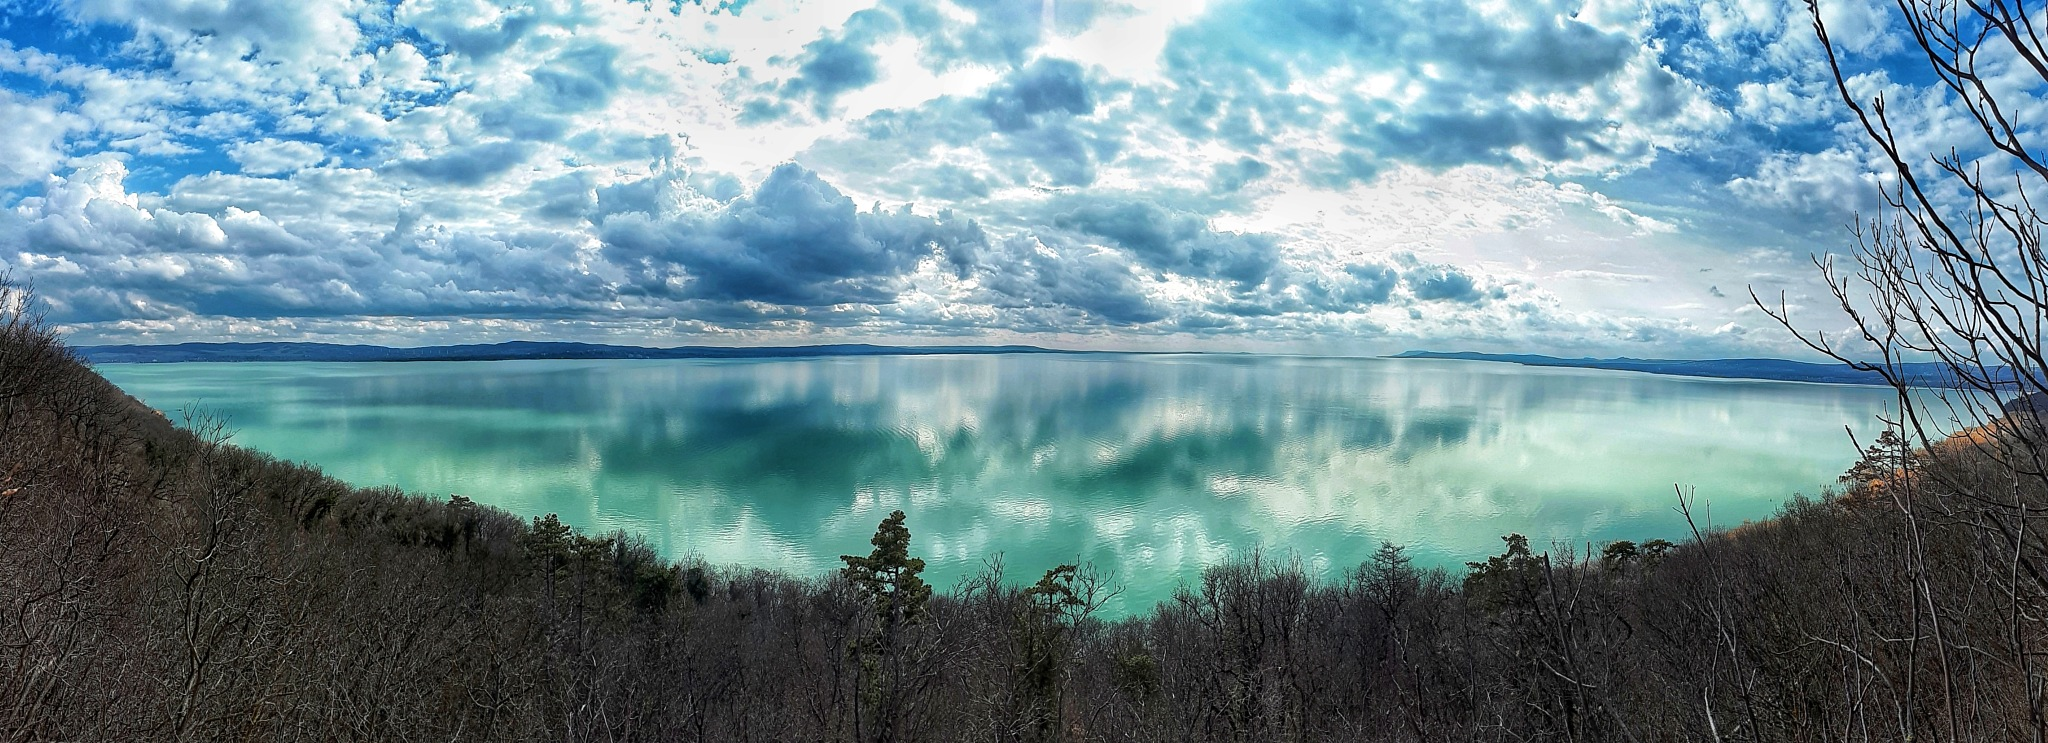 Greenblue by Topy